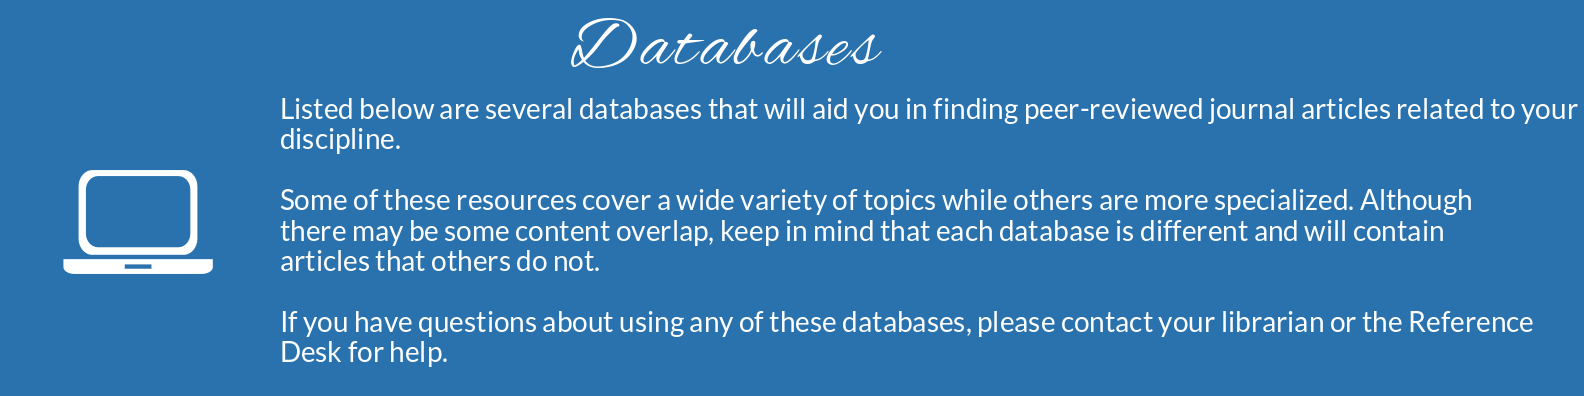 Listed below are several databases to aid you in your research process.